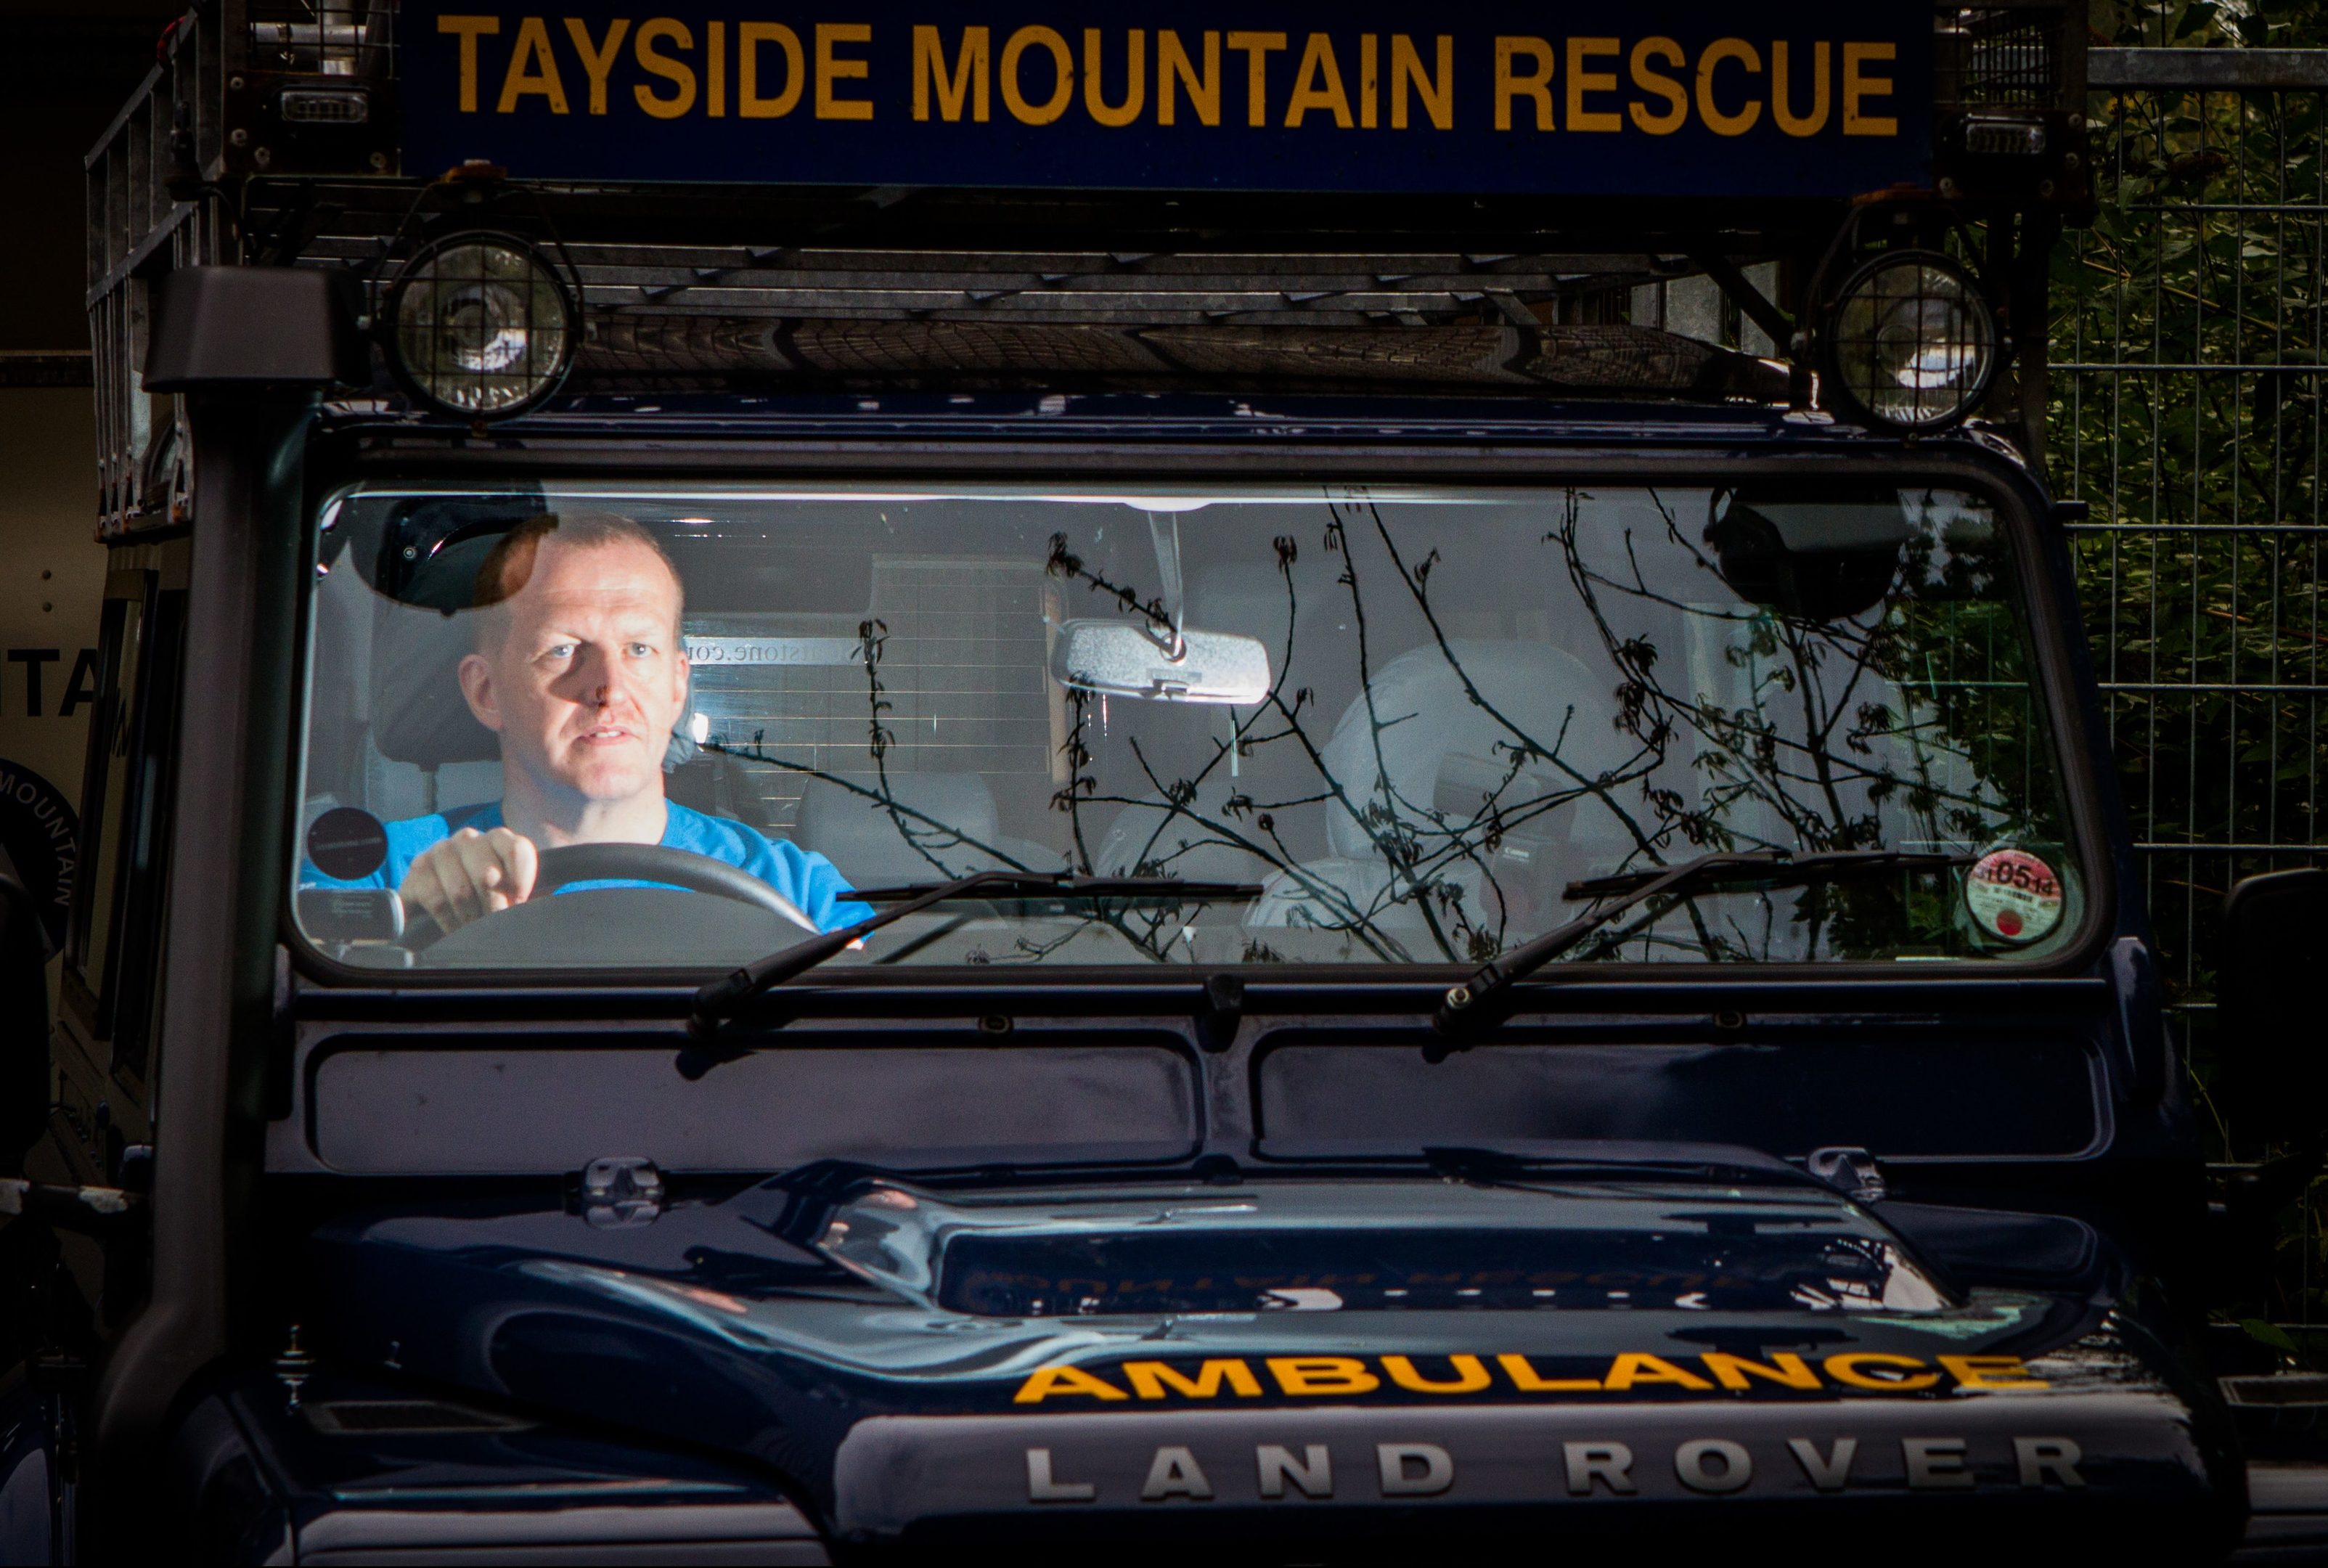 A major beneficiary from the wind farm funds is Tayside Mountain Rescue.